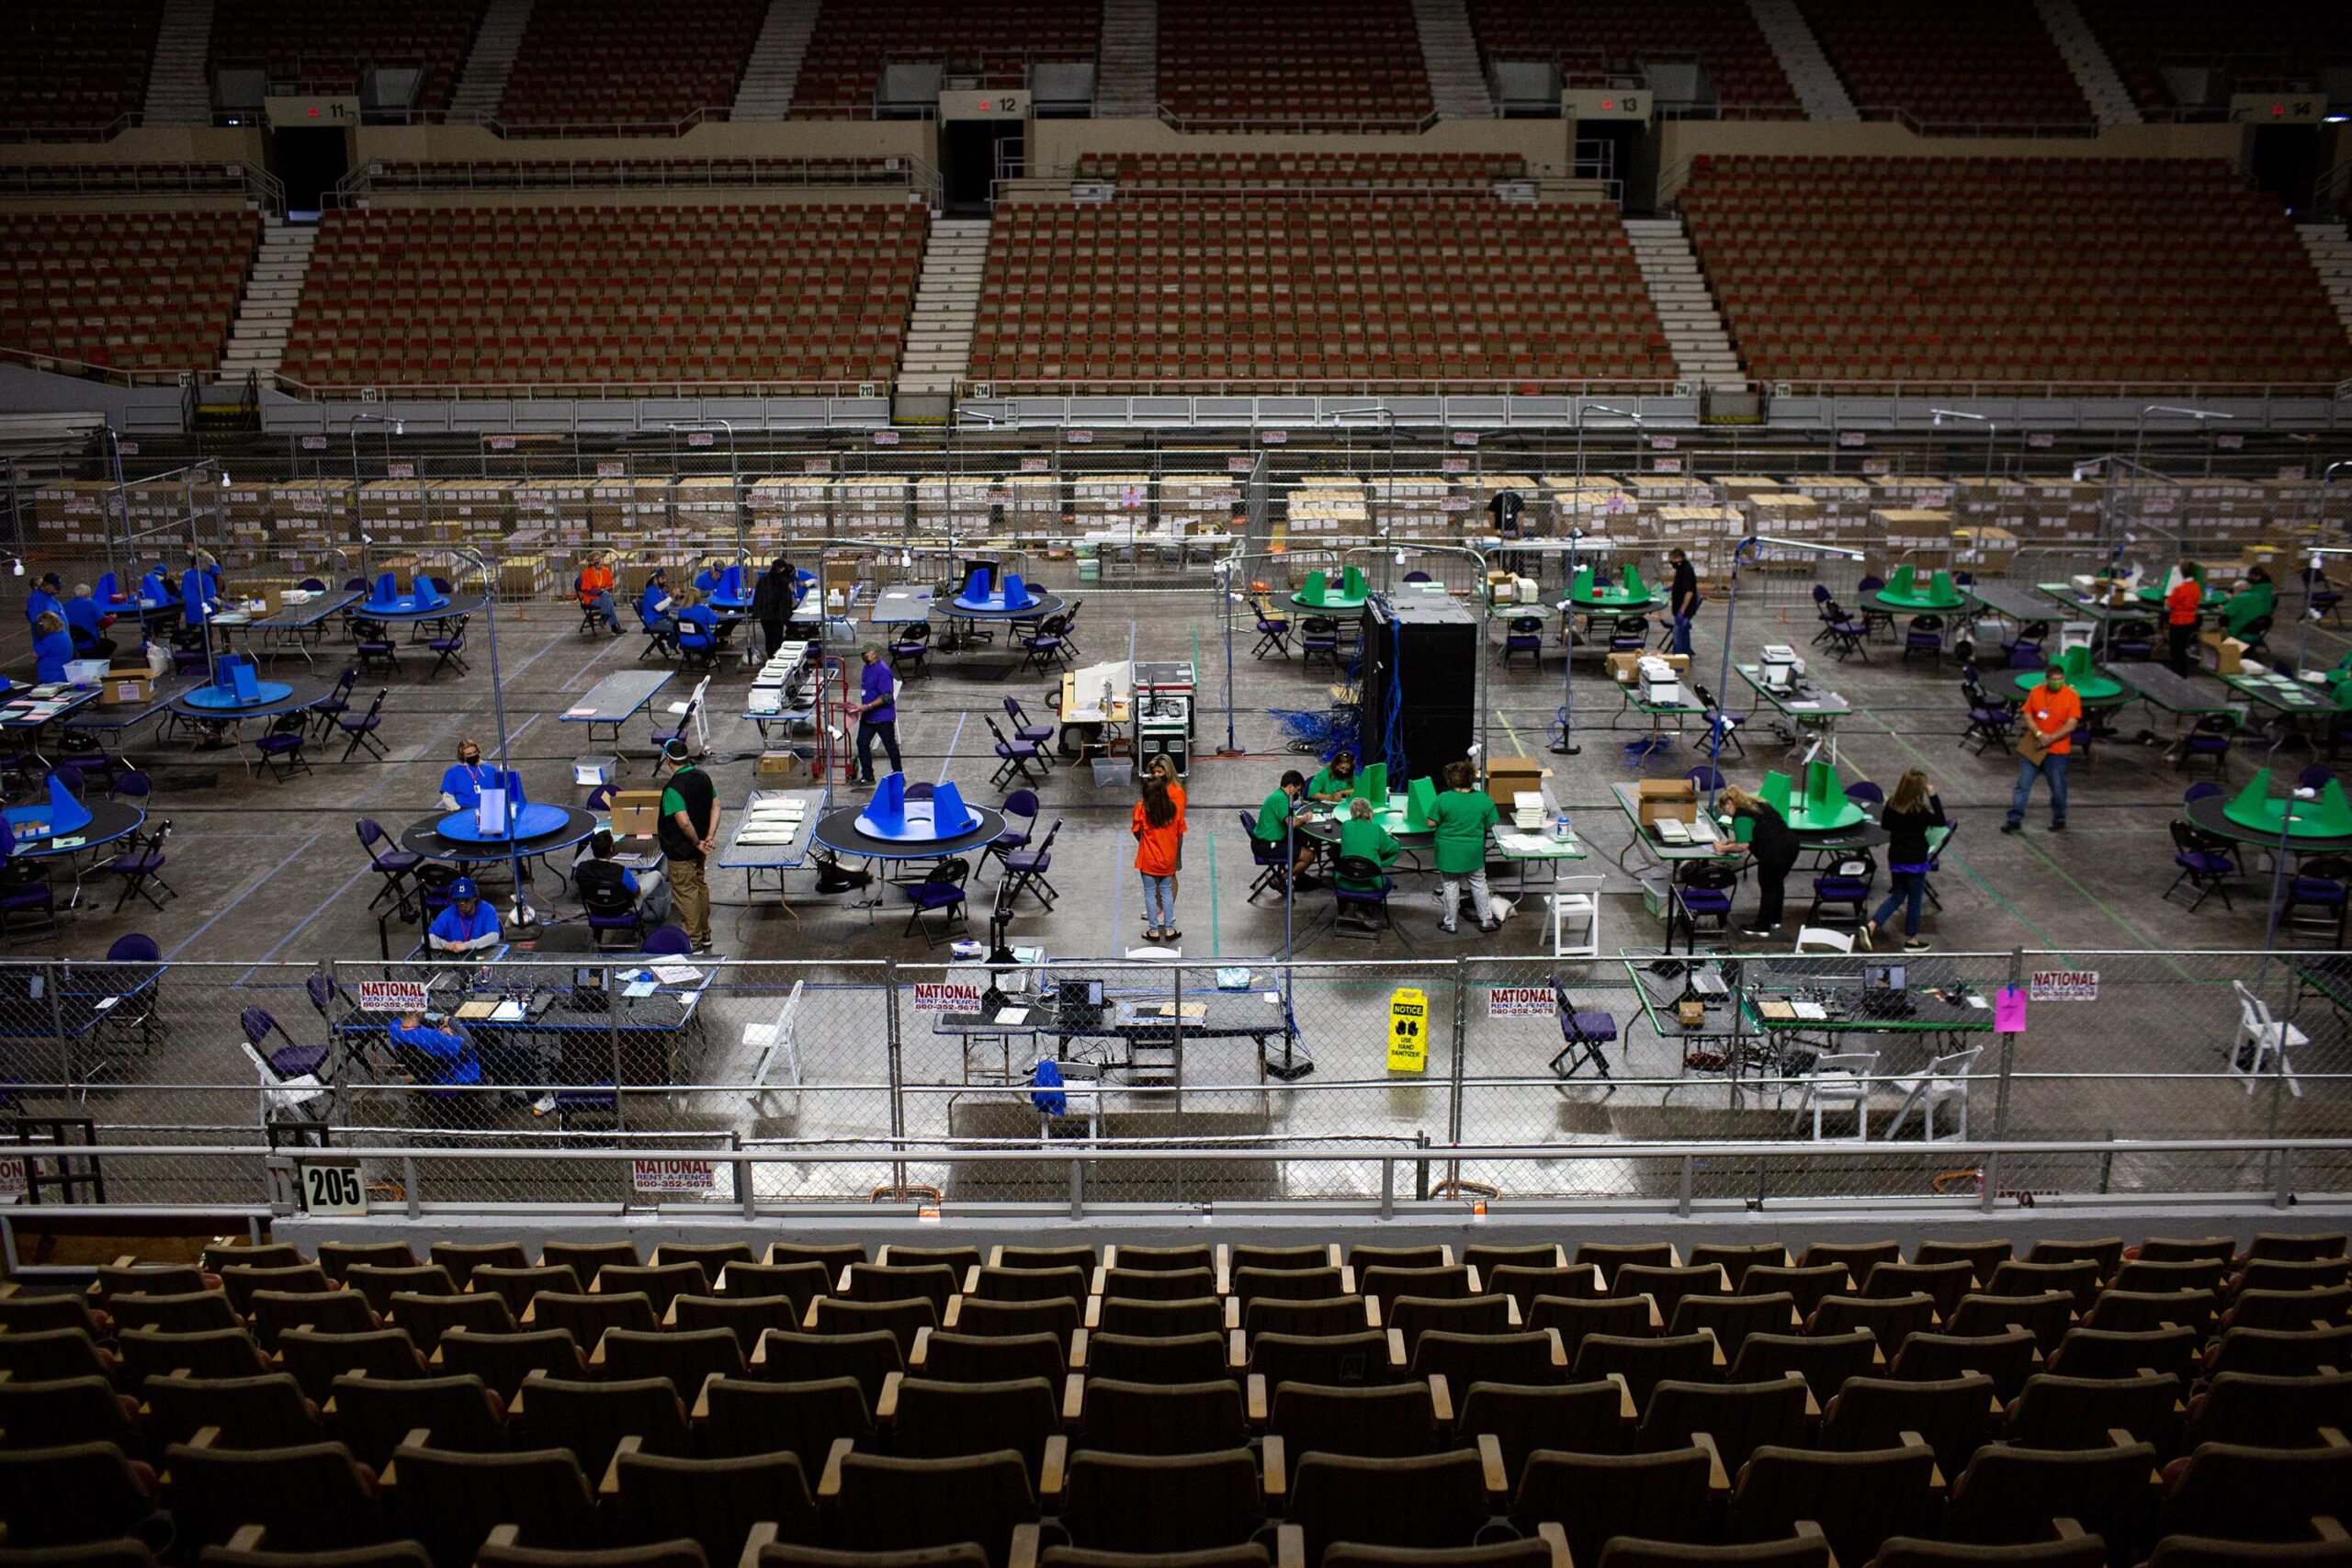 <i>Courtney Pedroza/The Washington Post/Getty Images</i><br/>Cyber Ninjas workers examine and recount ballots from the 2020 general election on May 3